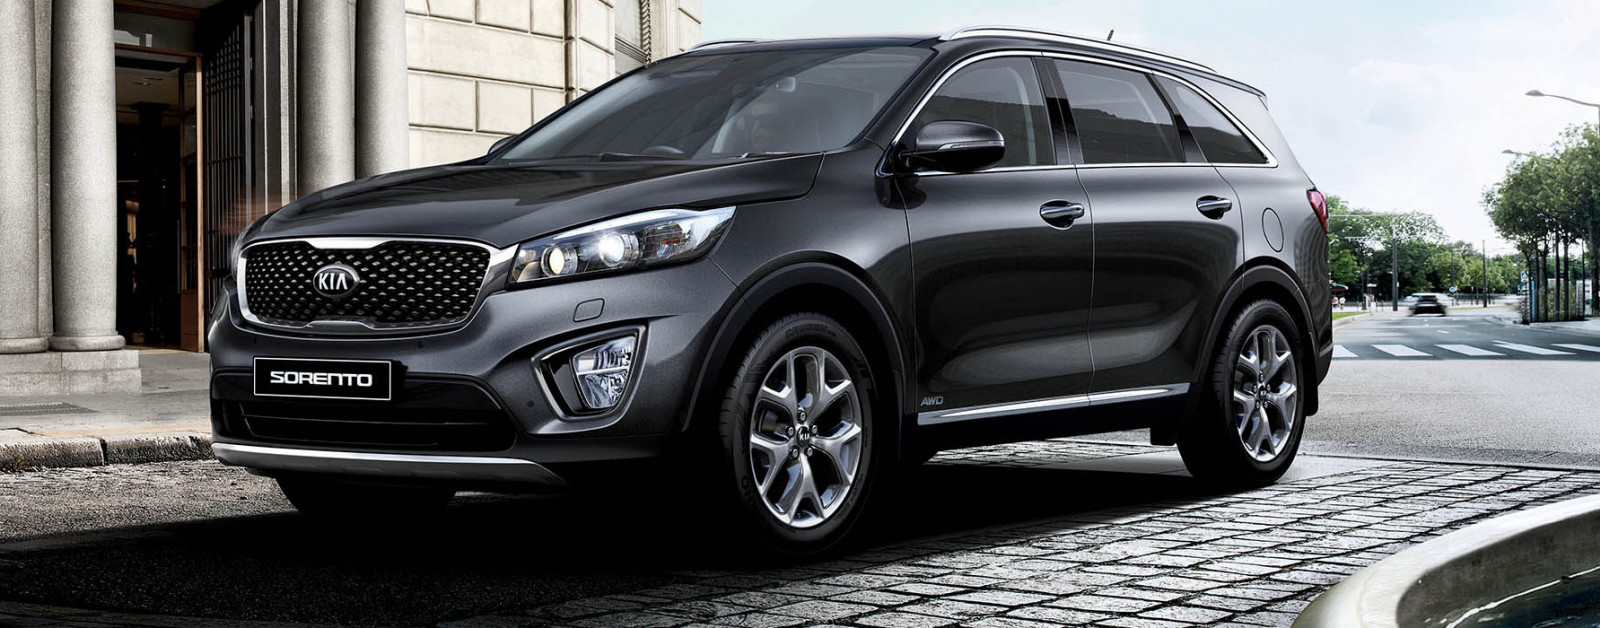 New Kia Sorento For Sale In Woden Queanbeyan John Mcgrath Accessories Strong From The Inside Out Comes With A Matrix Of Passive And Active Safety Systems All Round Protection Including Extensive Use